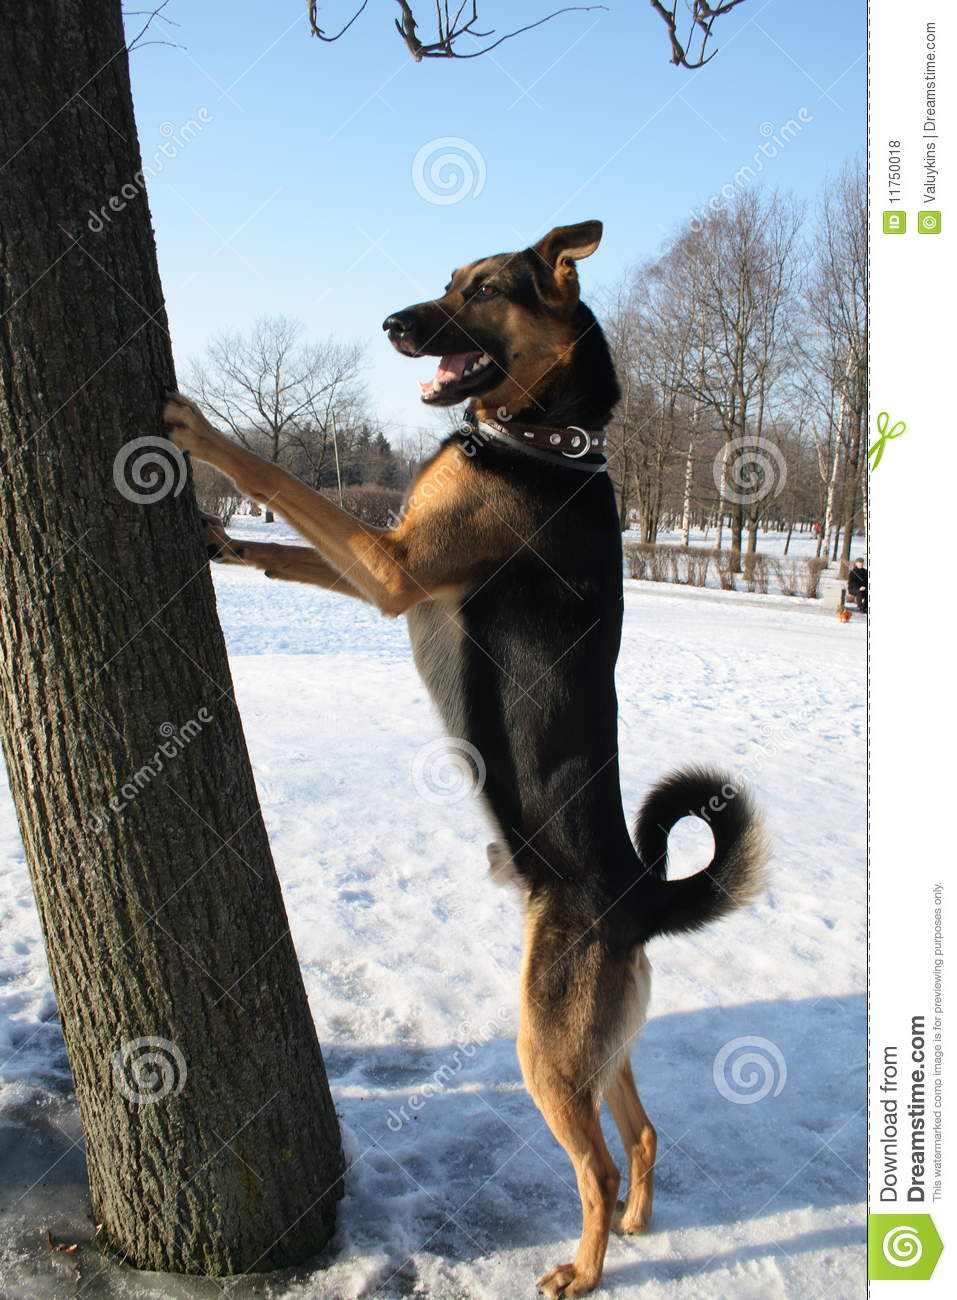 Standing Dog Royalty Free Stock Photos - Image: 11750018